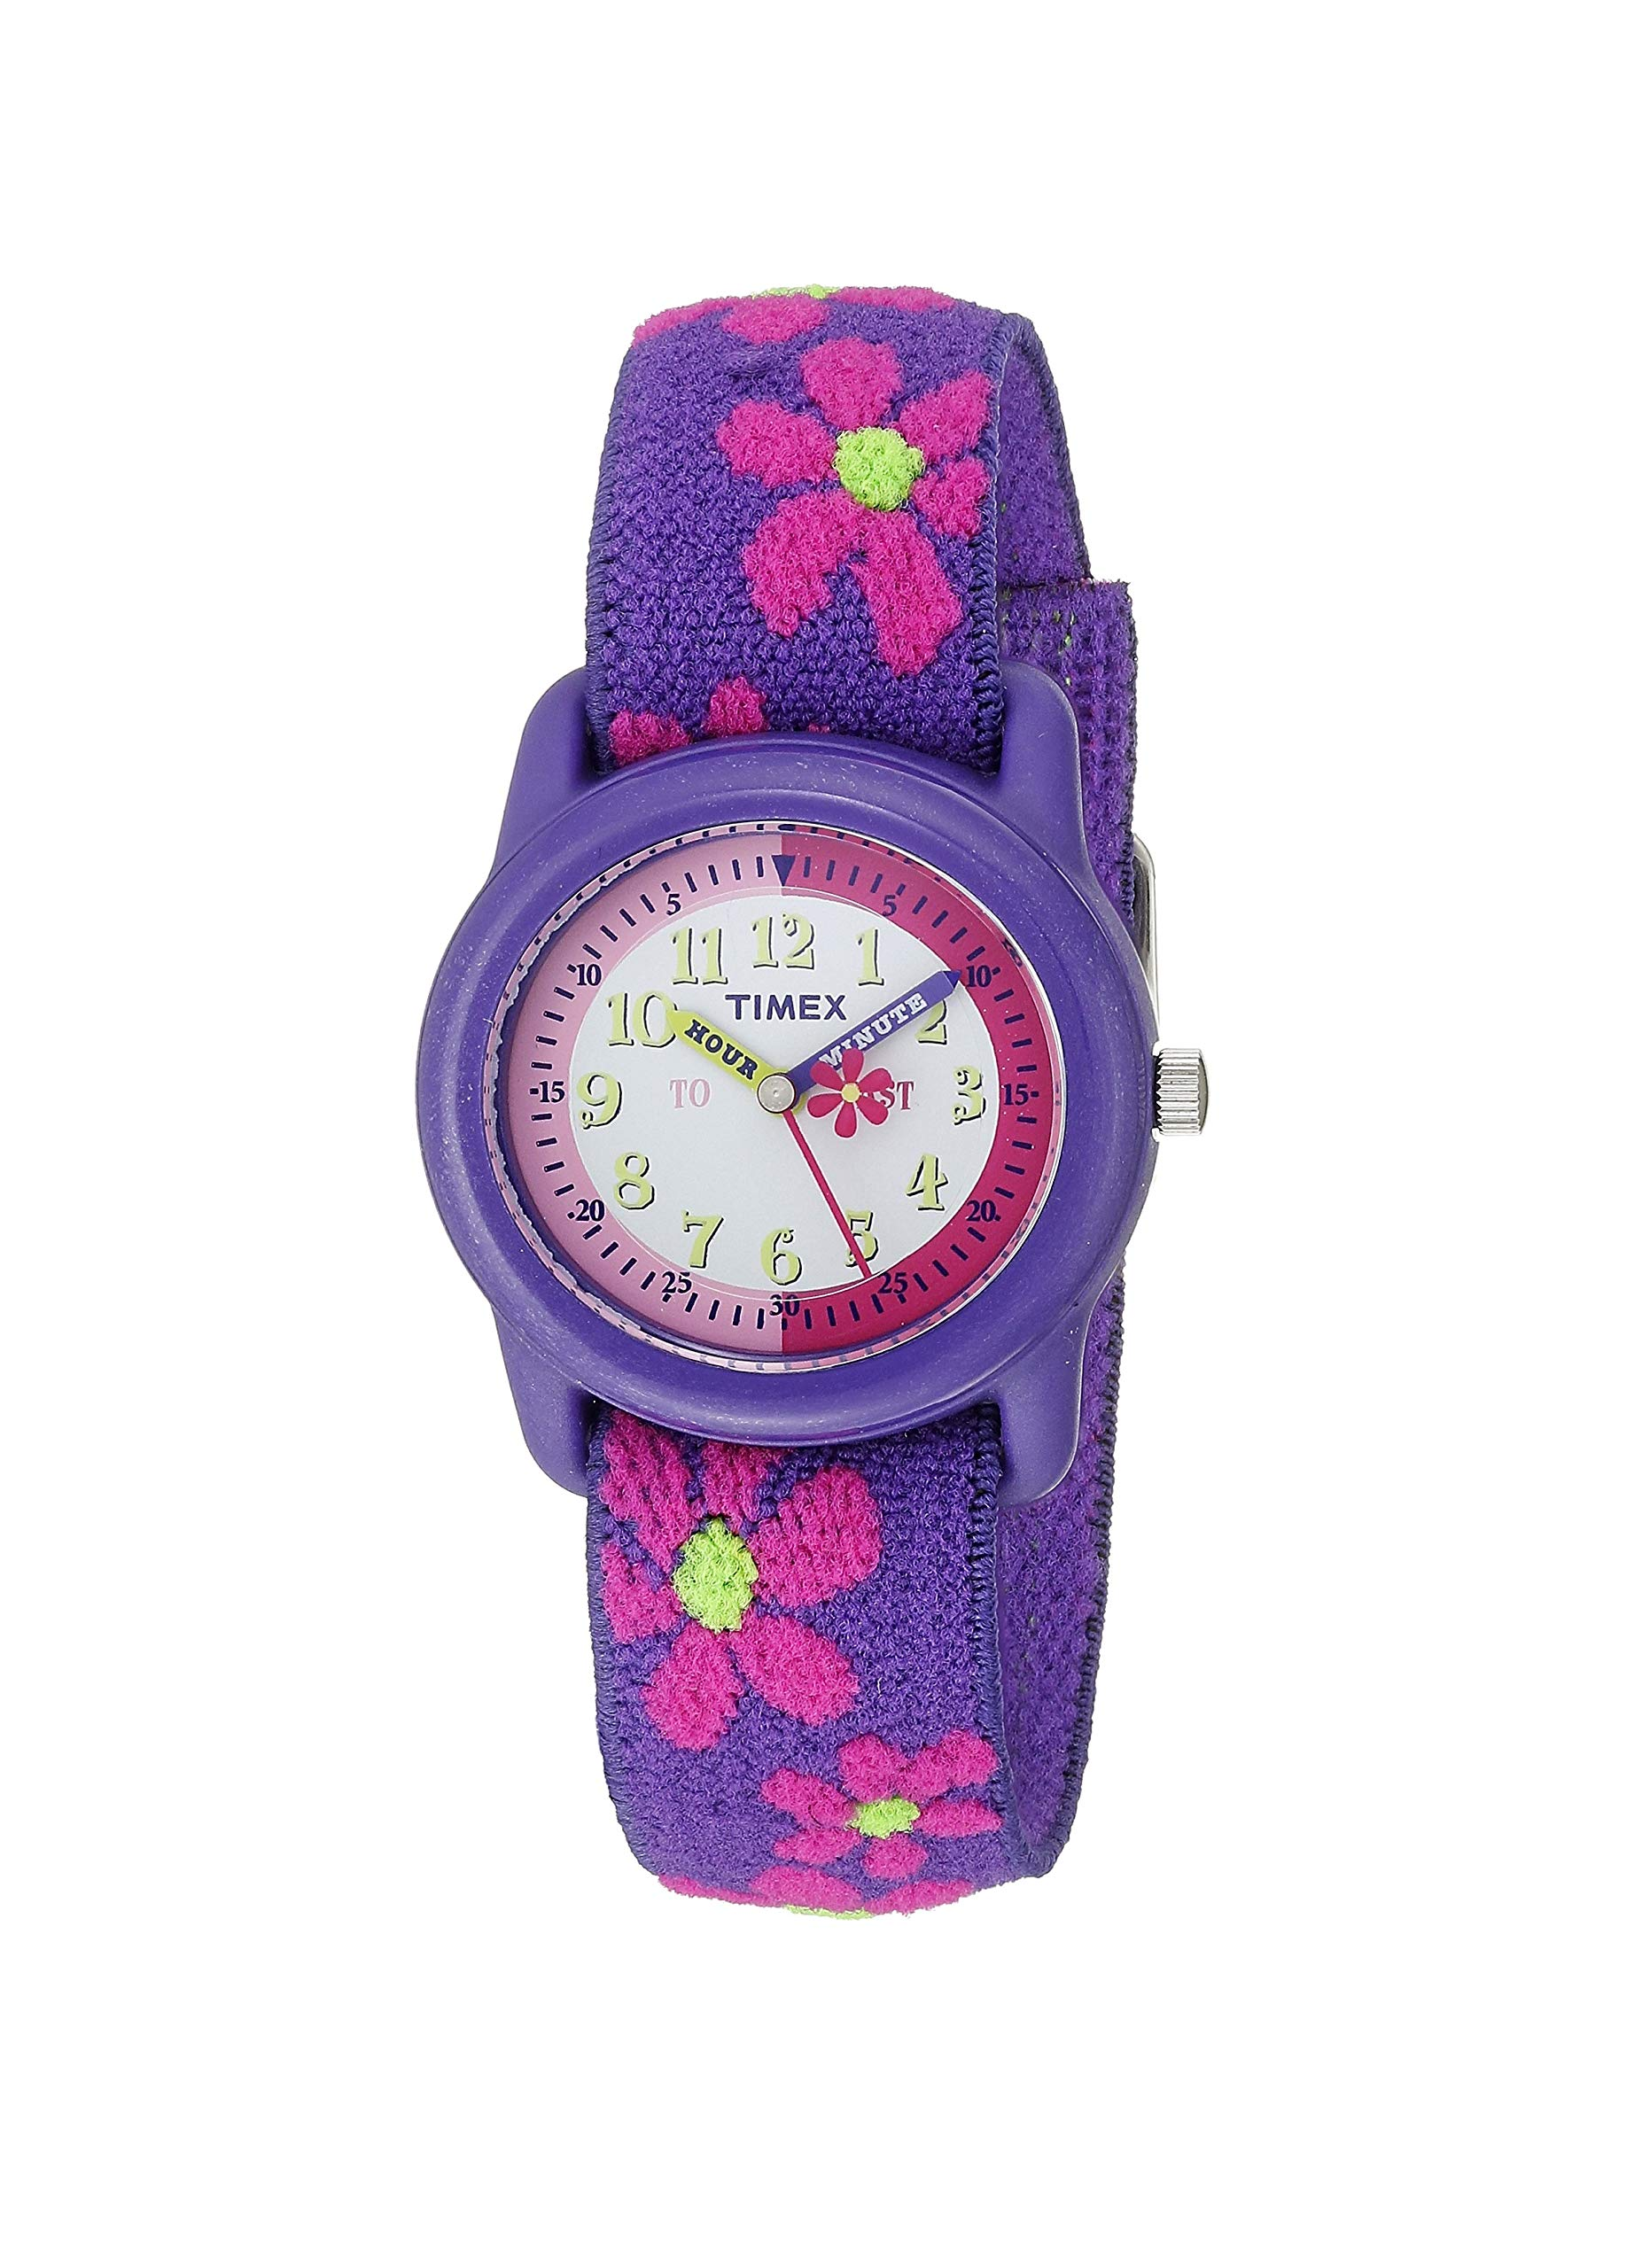 Timex Analog Youth Watch - Kidz Analog | Purple Case & Elastic Strap by Timex